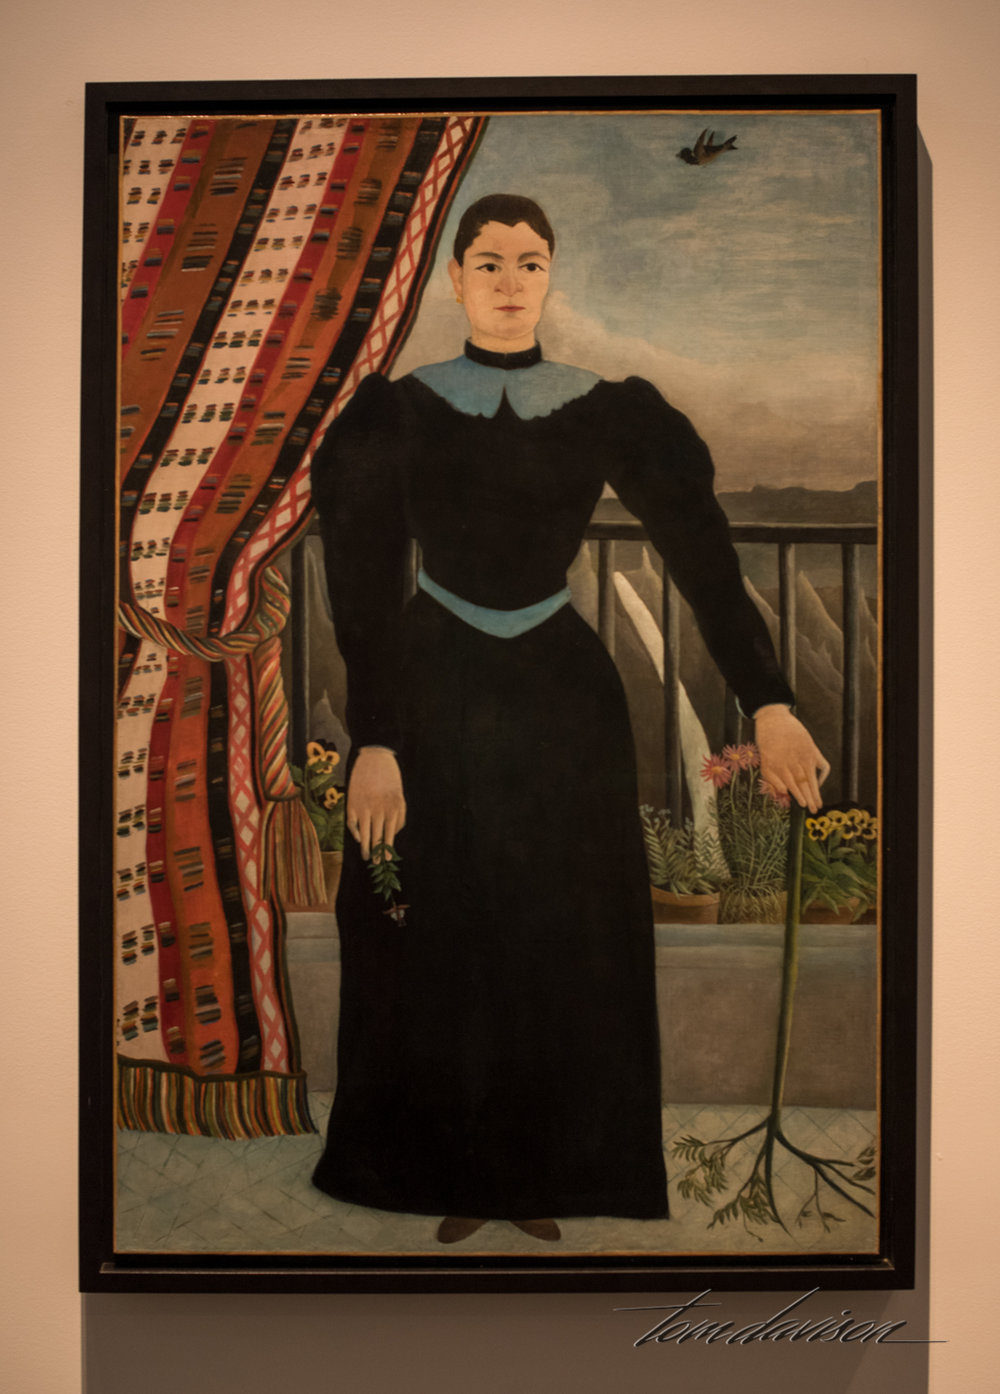 "Portrait of a Woman,   by Henry Rousseau (French), Oil on canvas, 1895.  ""In 1908, Picasso bought this painting by Henri Rousseau in a secondhand store for five francs.  He later called it 'one of the most truthful of all French psychological portraits.'  It breaks away from formal portraits of the time through a flattened image and odd touches, like an upside-down branch.  Picasso saw in Rousseau an authenticity and immediacy that he felt was absent in society.  He sought out Rousseau, a self-taught artist, and held a banquet in his honor.  It is considered one of the legendary parties of the early 1900s - full of farce, practical jokes, and dramatic personalitiese"""